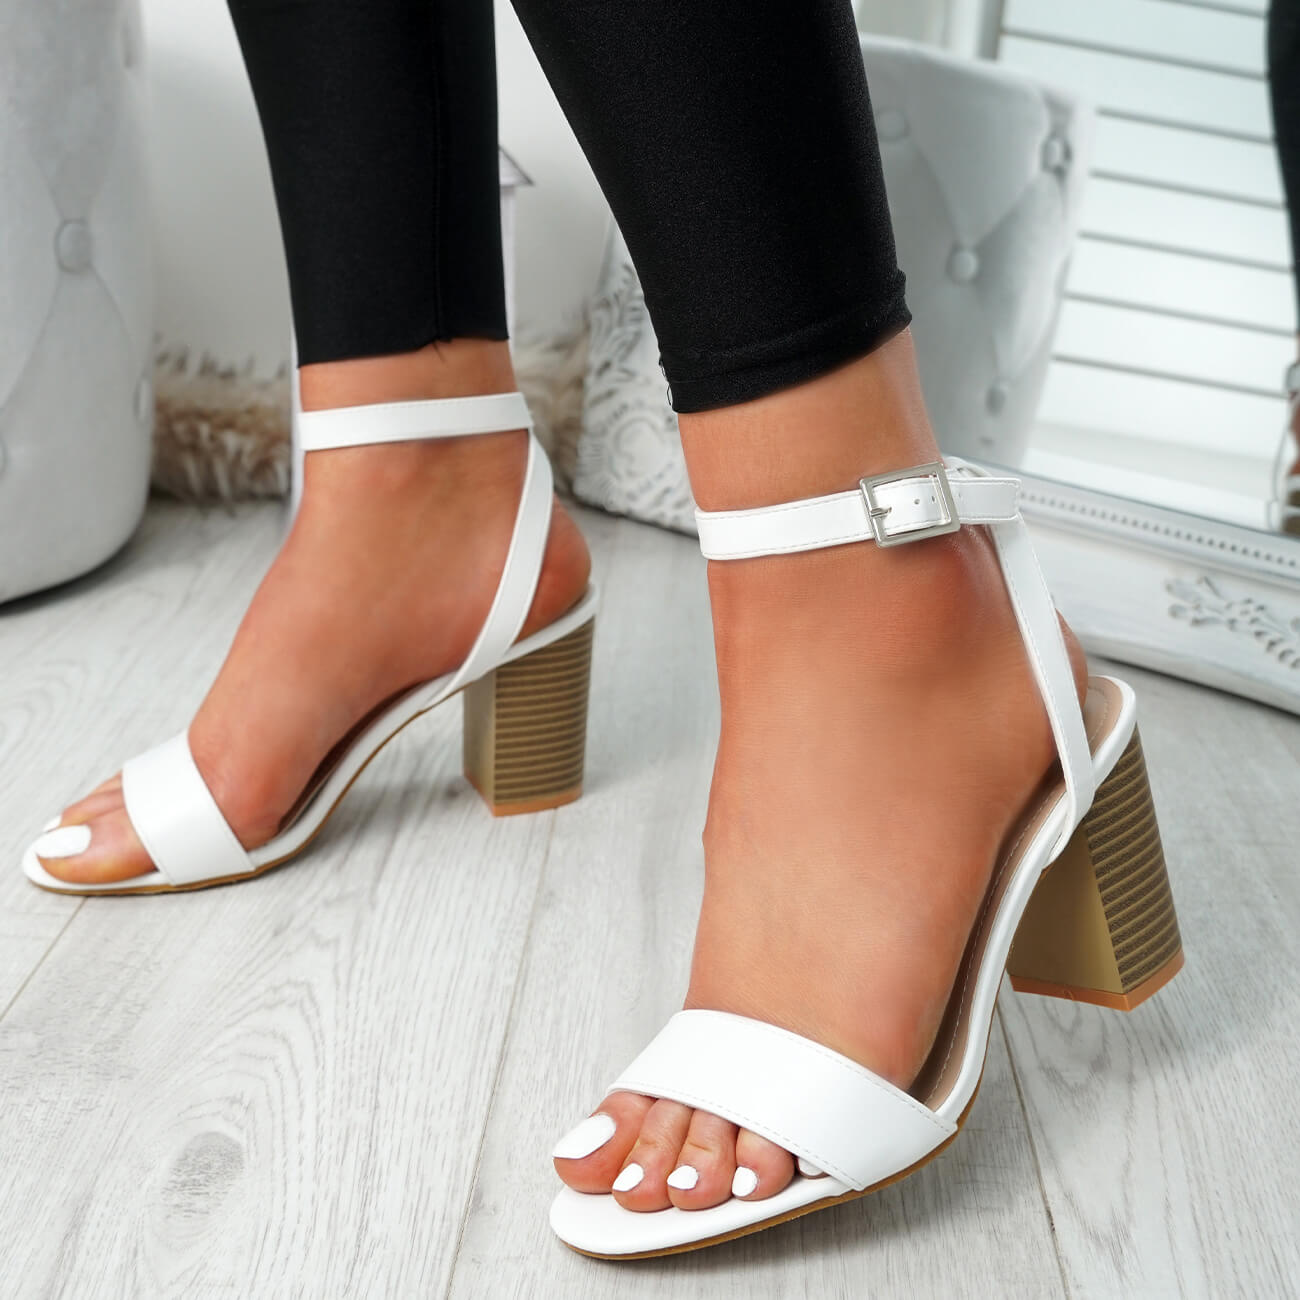 WOMENS-LADIES-PEEP-TOE-HIGH-BLOCK-HEEL-SANDALS-ANKLE-STRAP-PARTY-SHOES-SIZE thumbnail 20